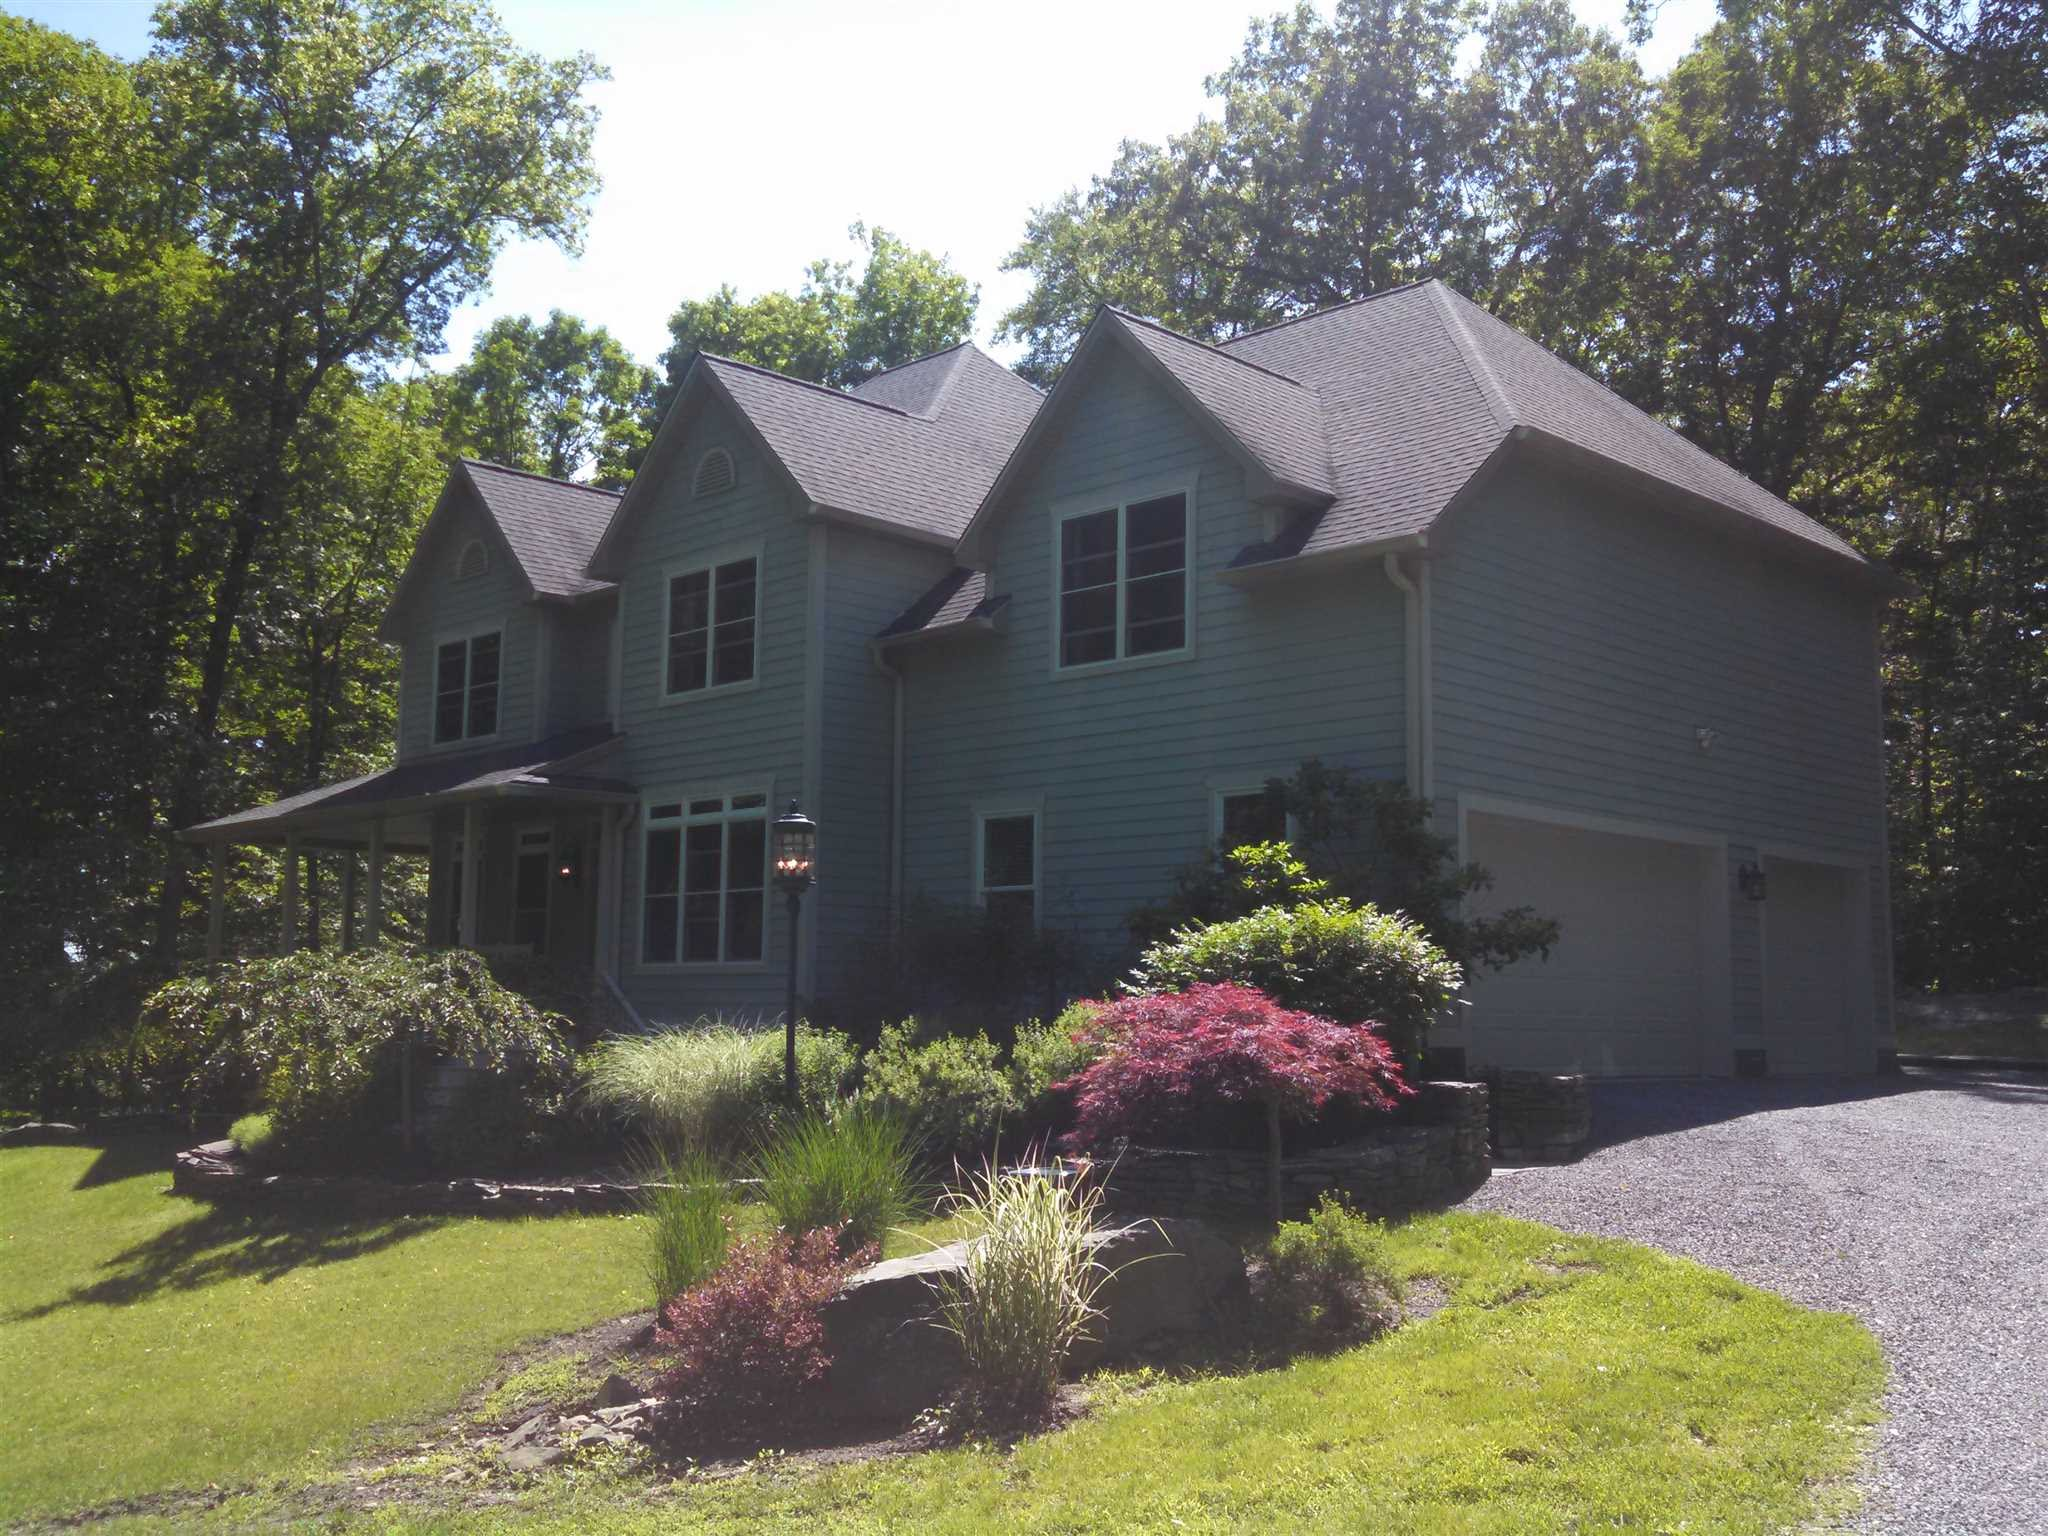 Single Family Home for Sale at 35 PEACOCK Road 35 PEACOCK Road Rhinebeck, New York 12572 United States